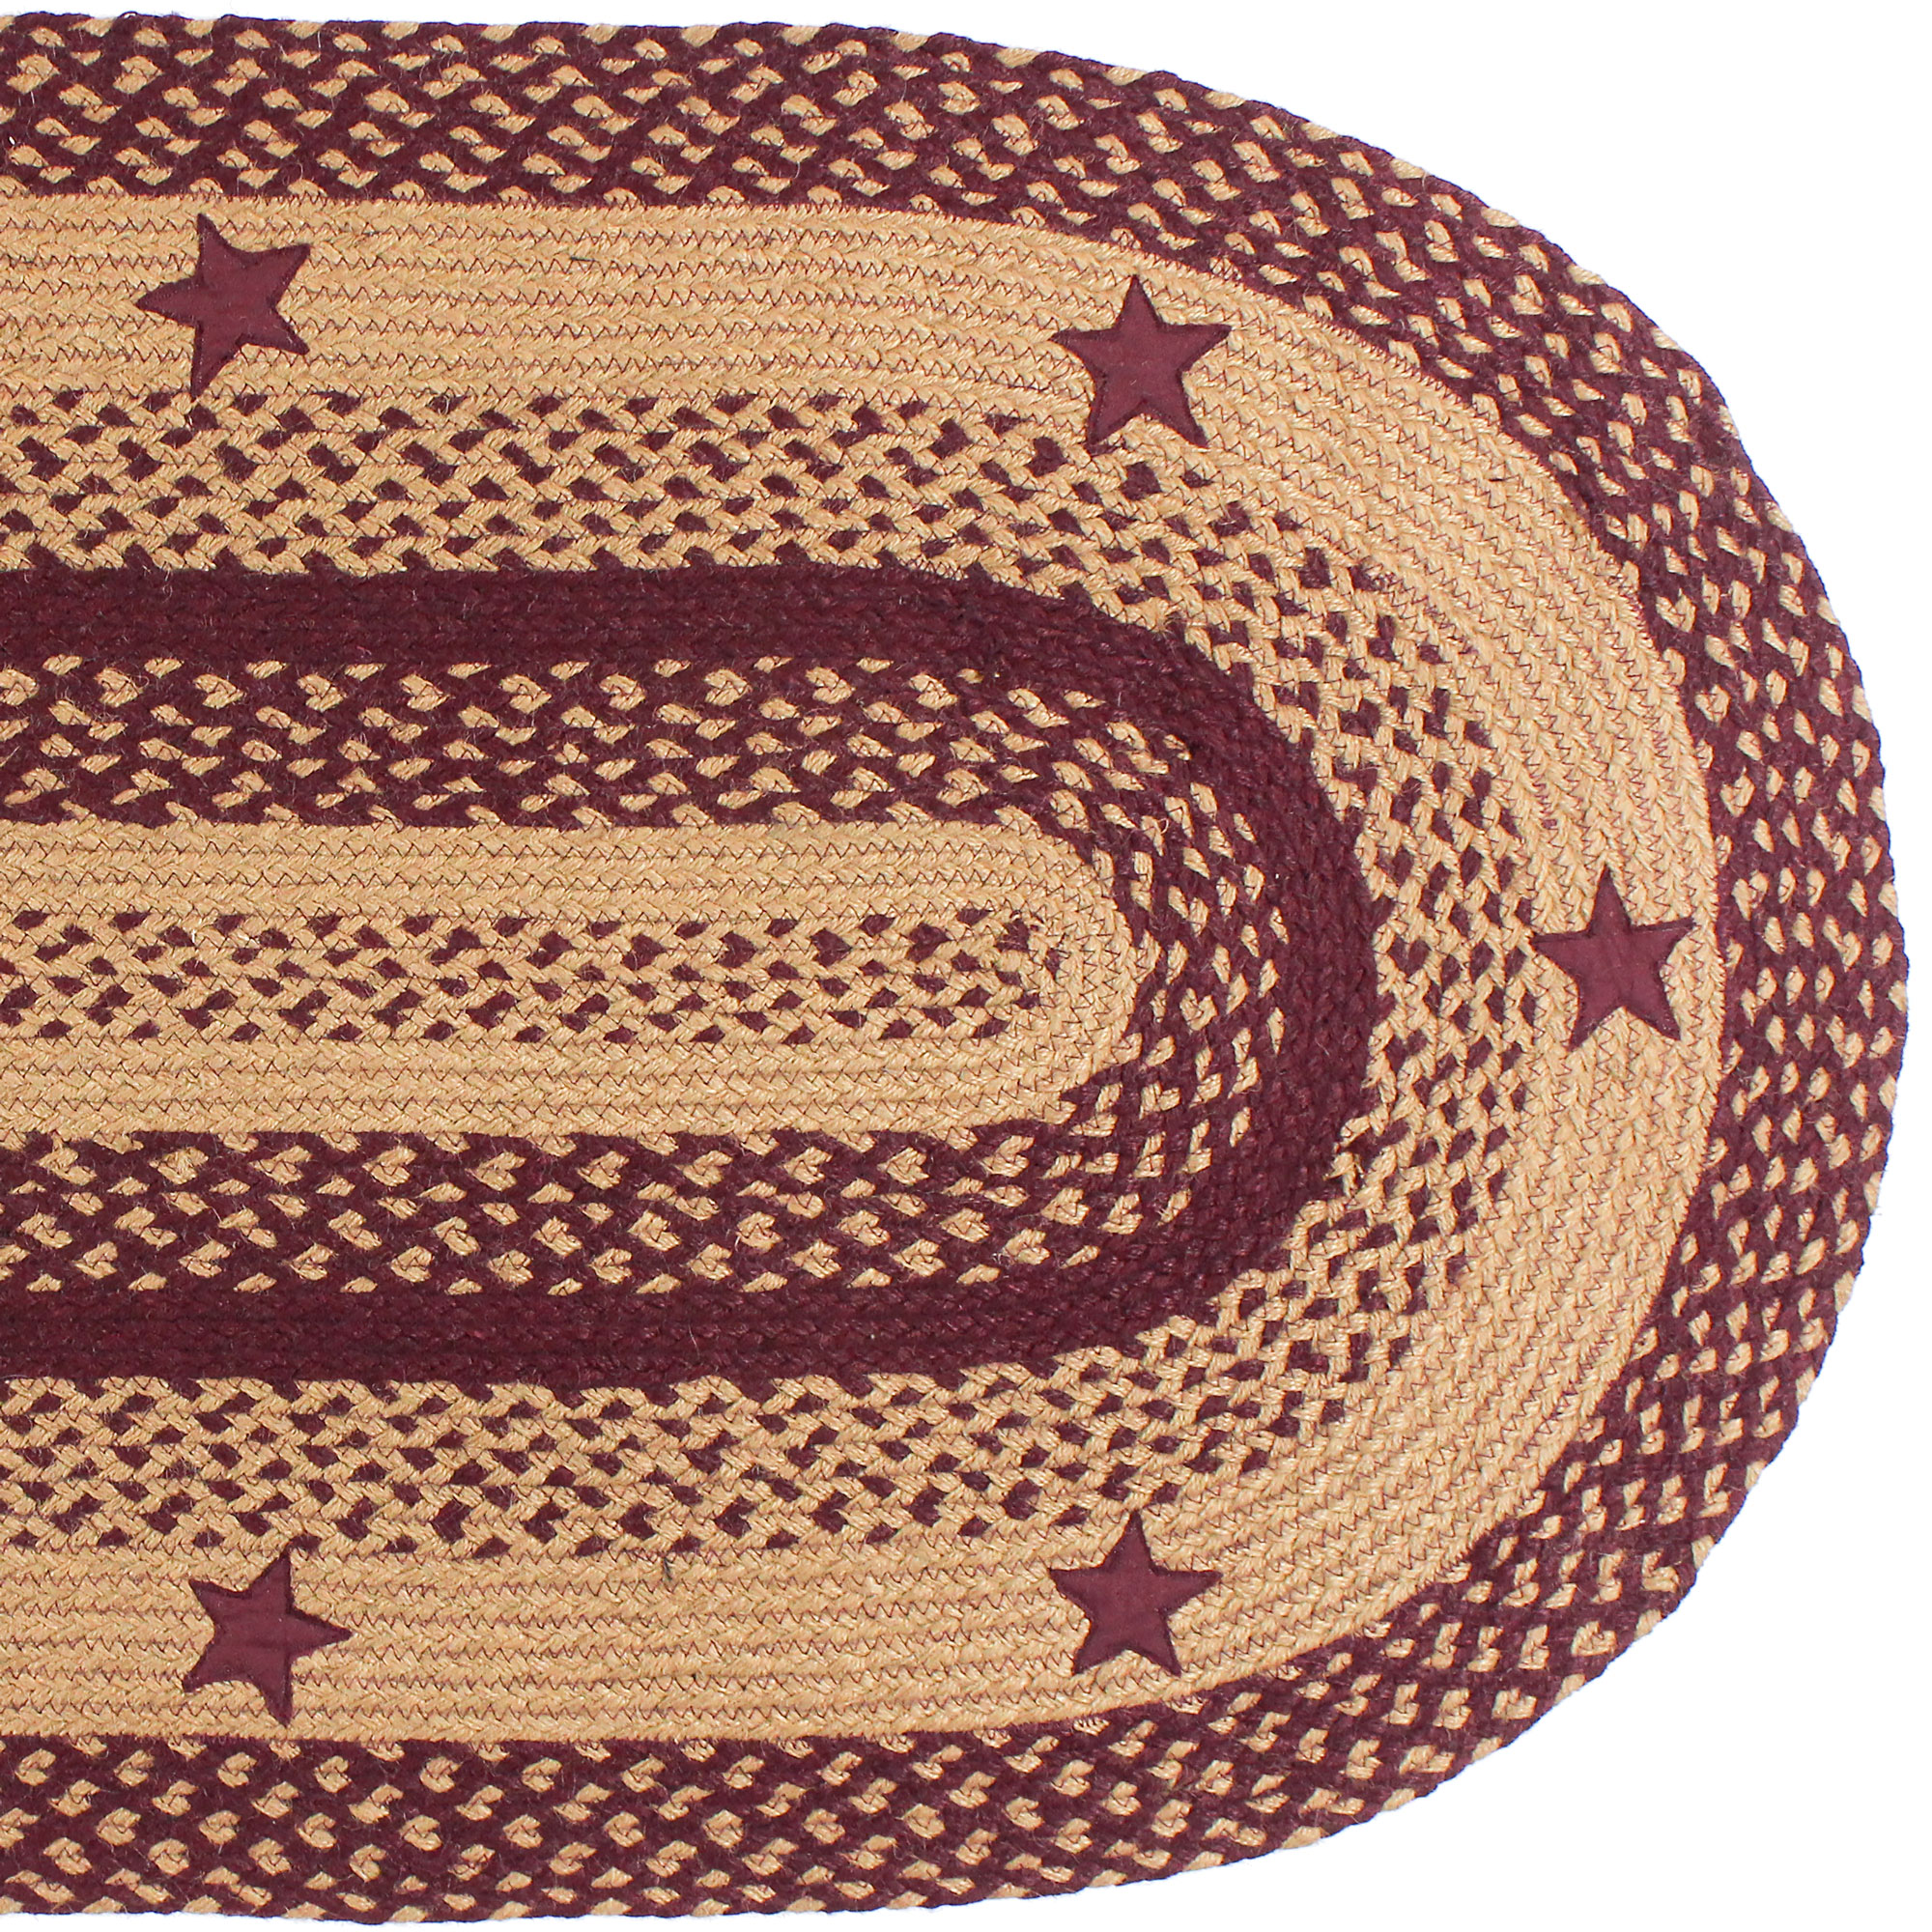 Inspiring braided rug for floorings and rugs ideas with round braided rugs and braided area rugs